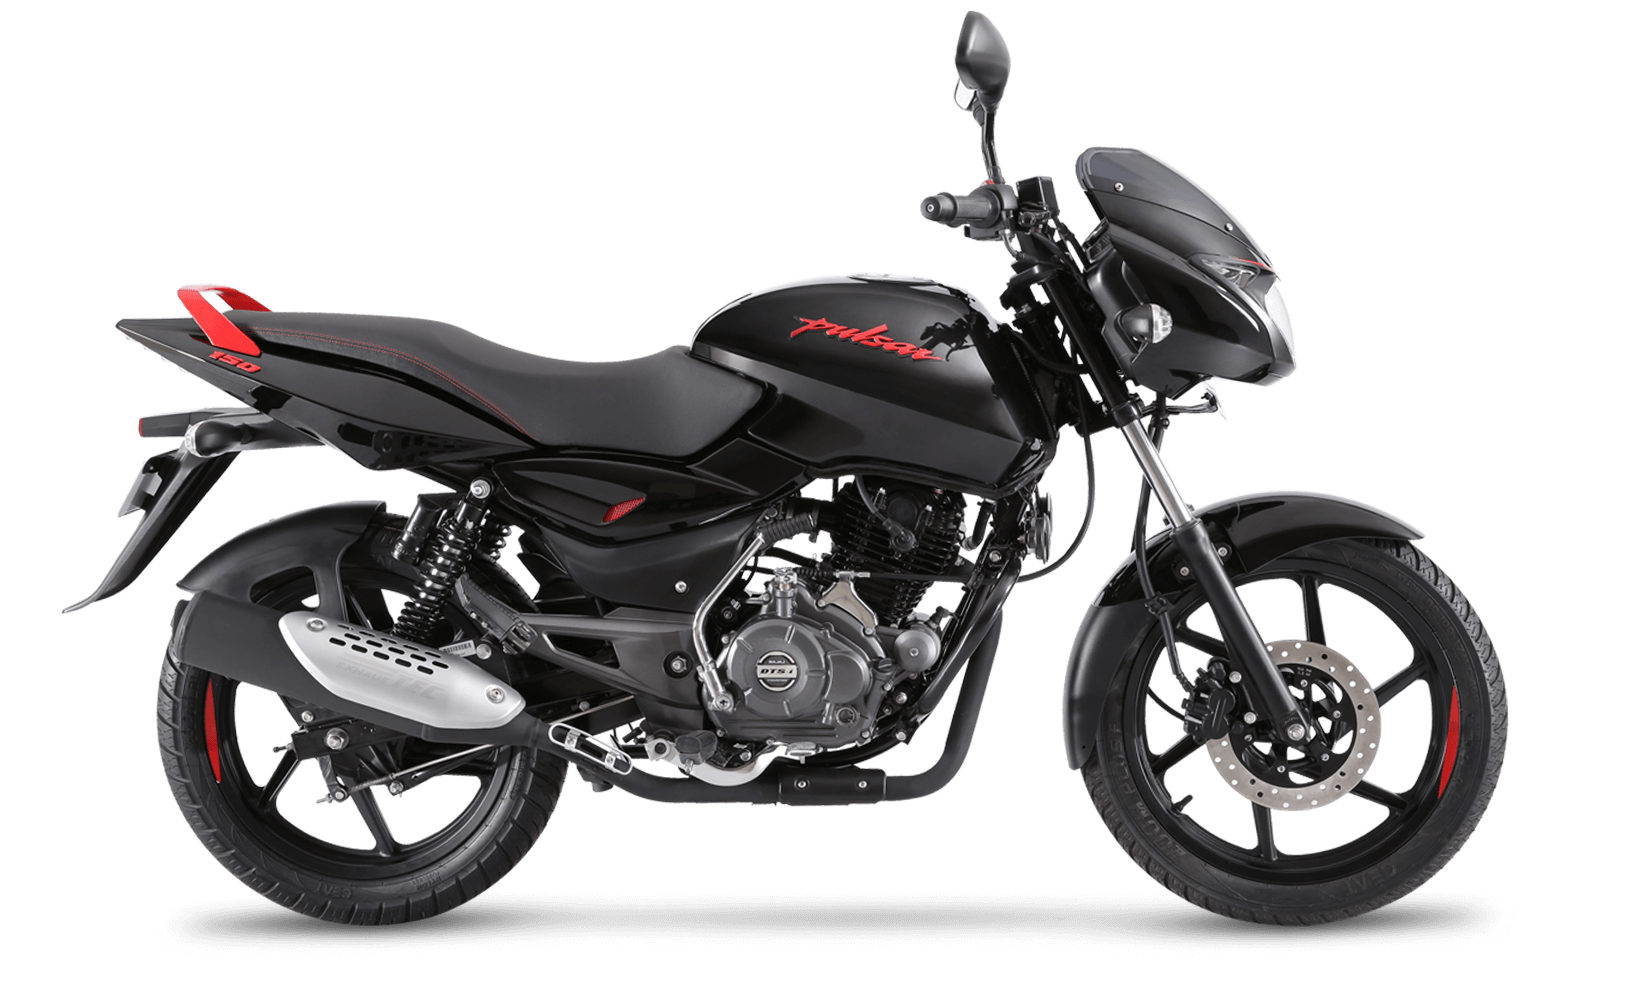 Black and Red Bajaj Pulsar 150cc Neon Motorcycle